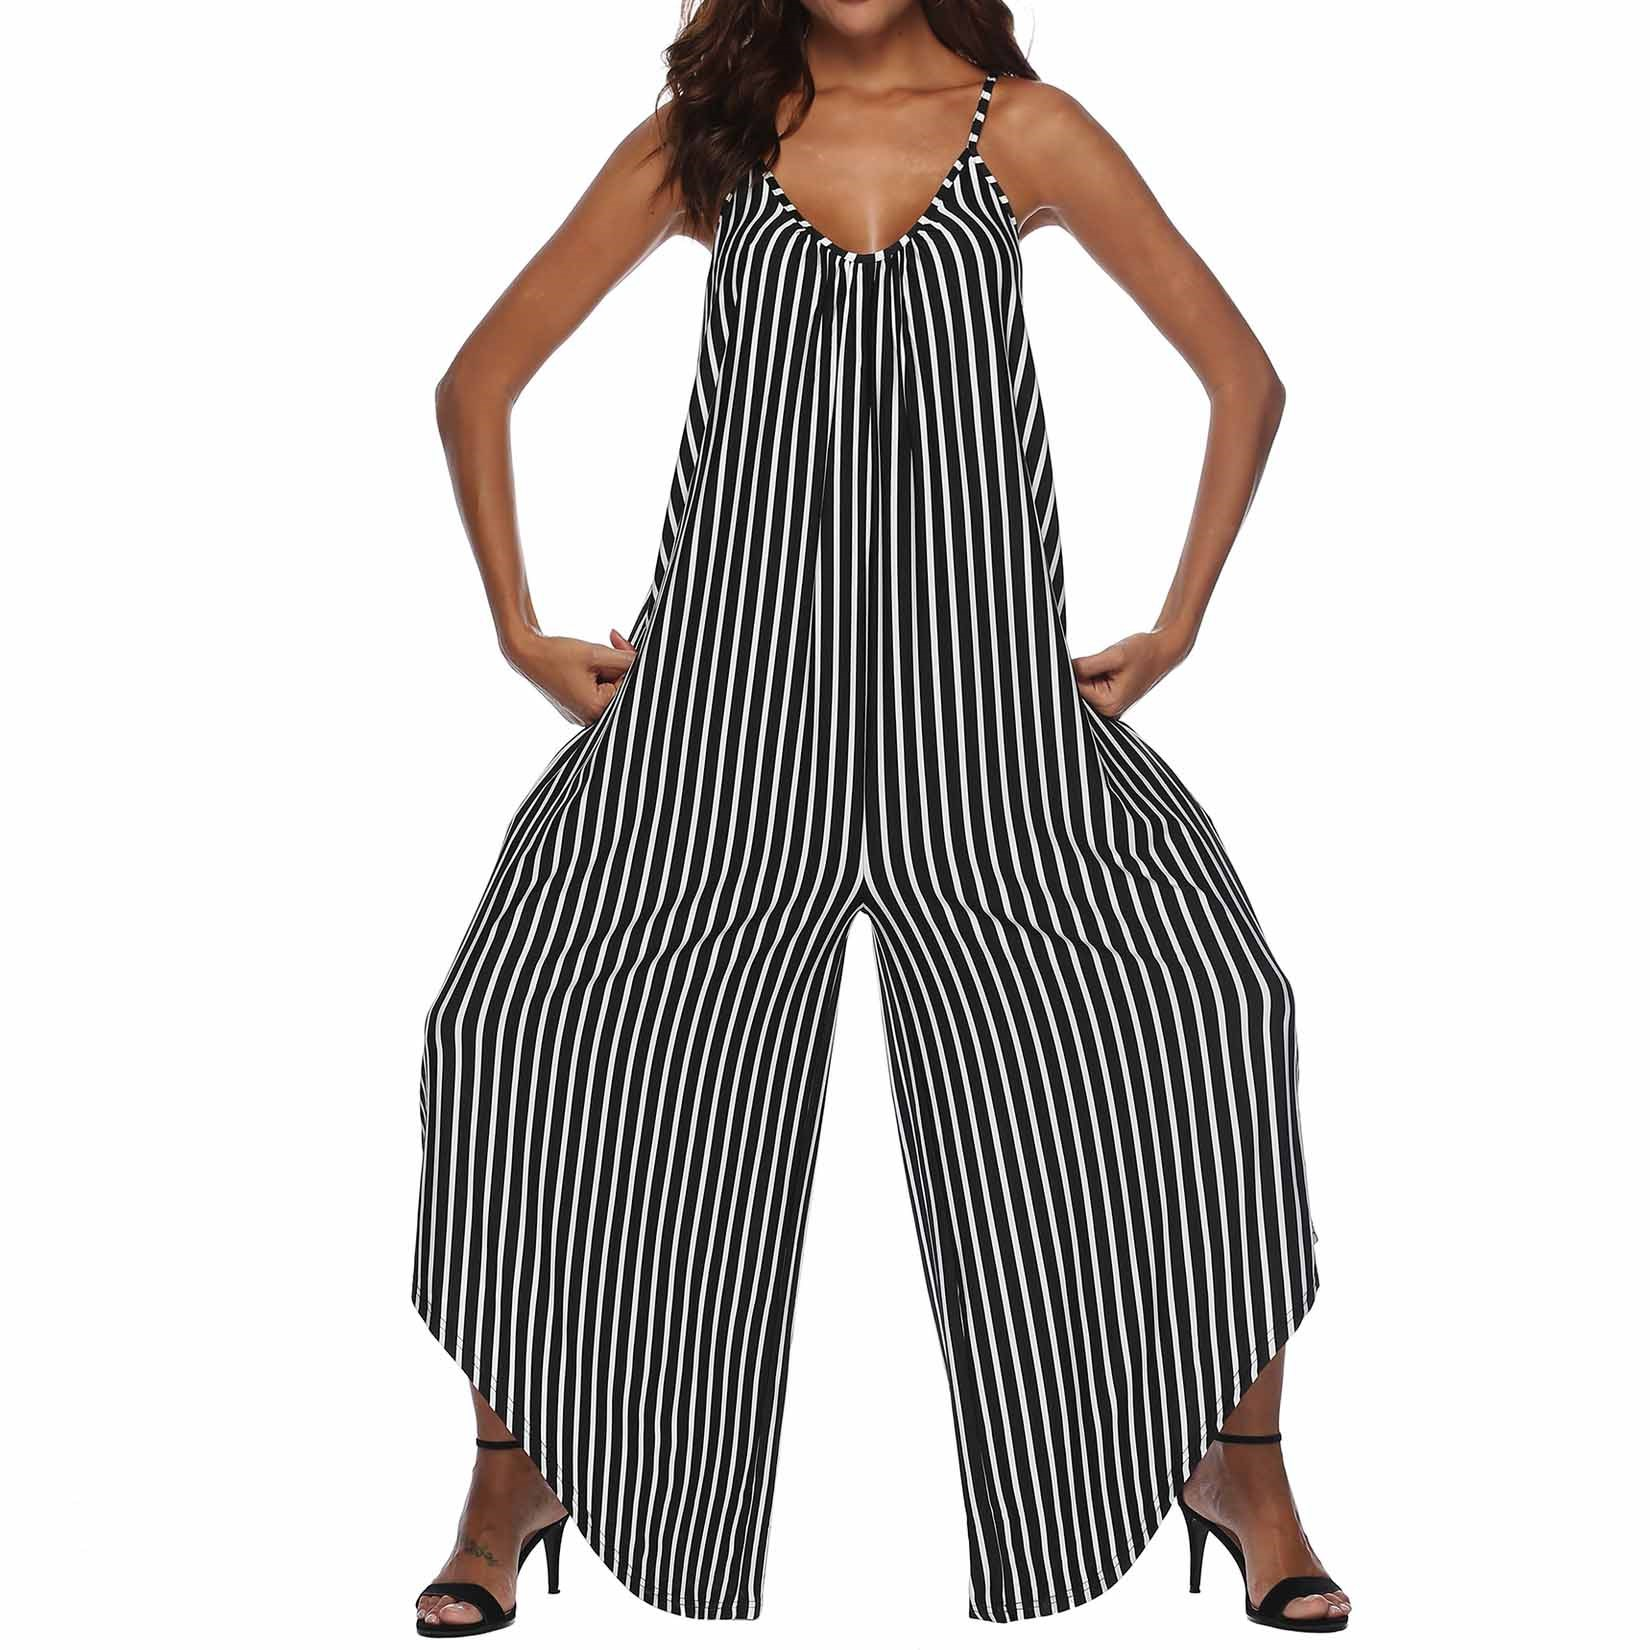 Fashion Nice Summer Women Striped Rompers Casual Spaghetti Strap Wide Leg Jumpsuit Loose Sleeveless Beach Backless Overalls